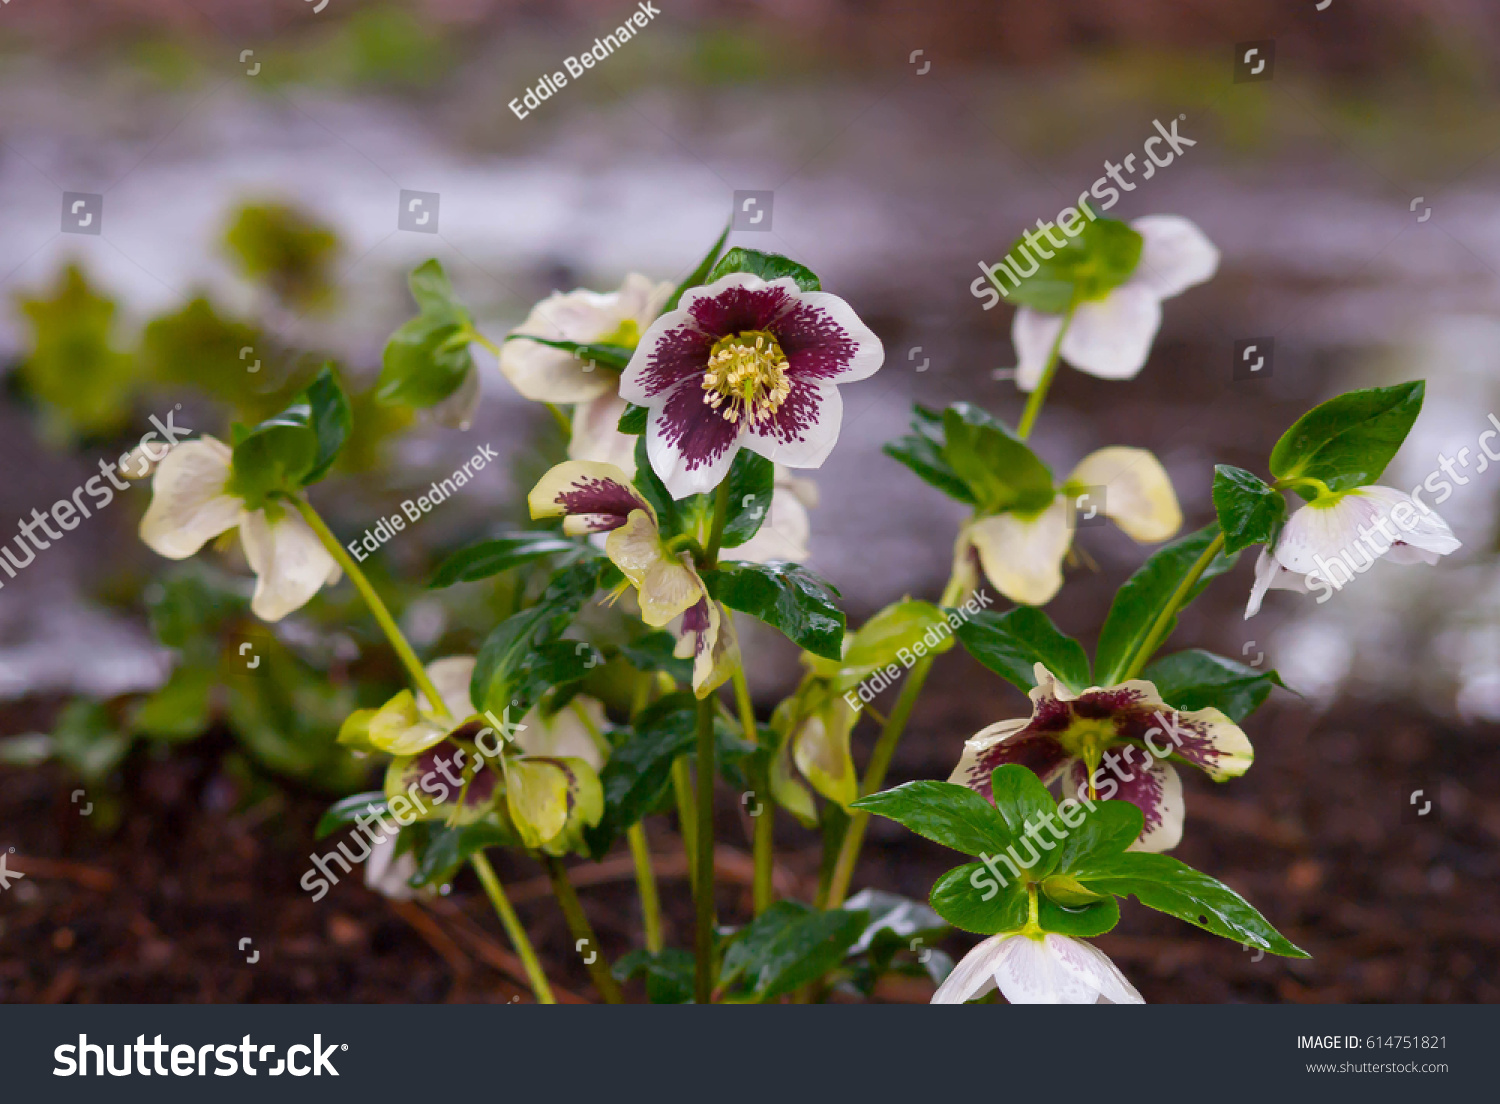 Several White Purple Flower Yellow Center Stock Photo Royalty Free